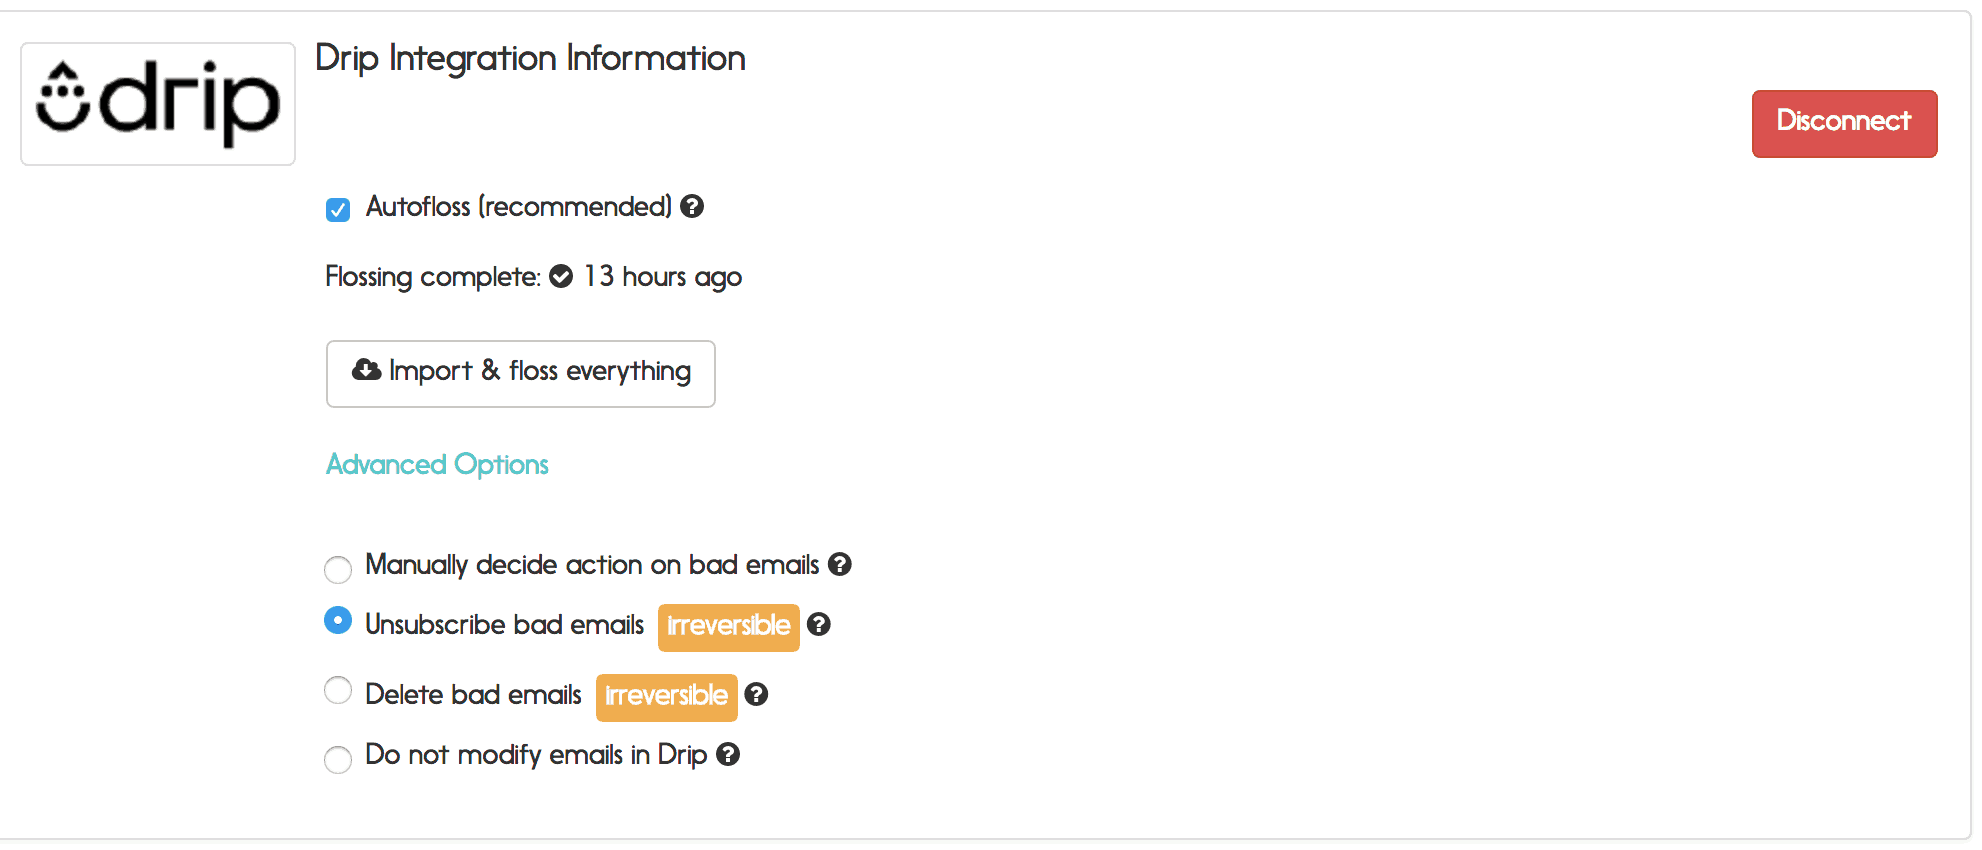 drip email verification options